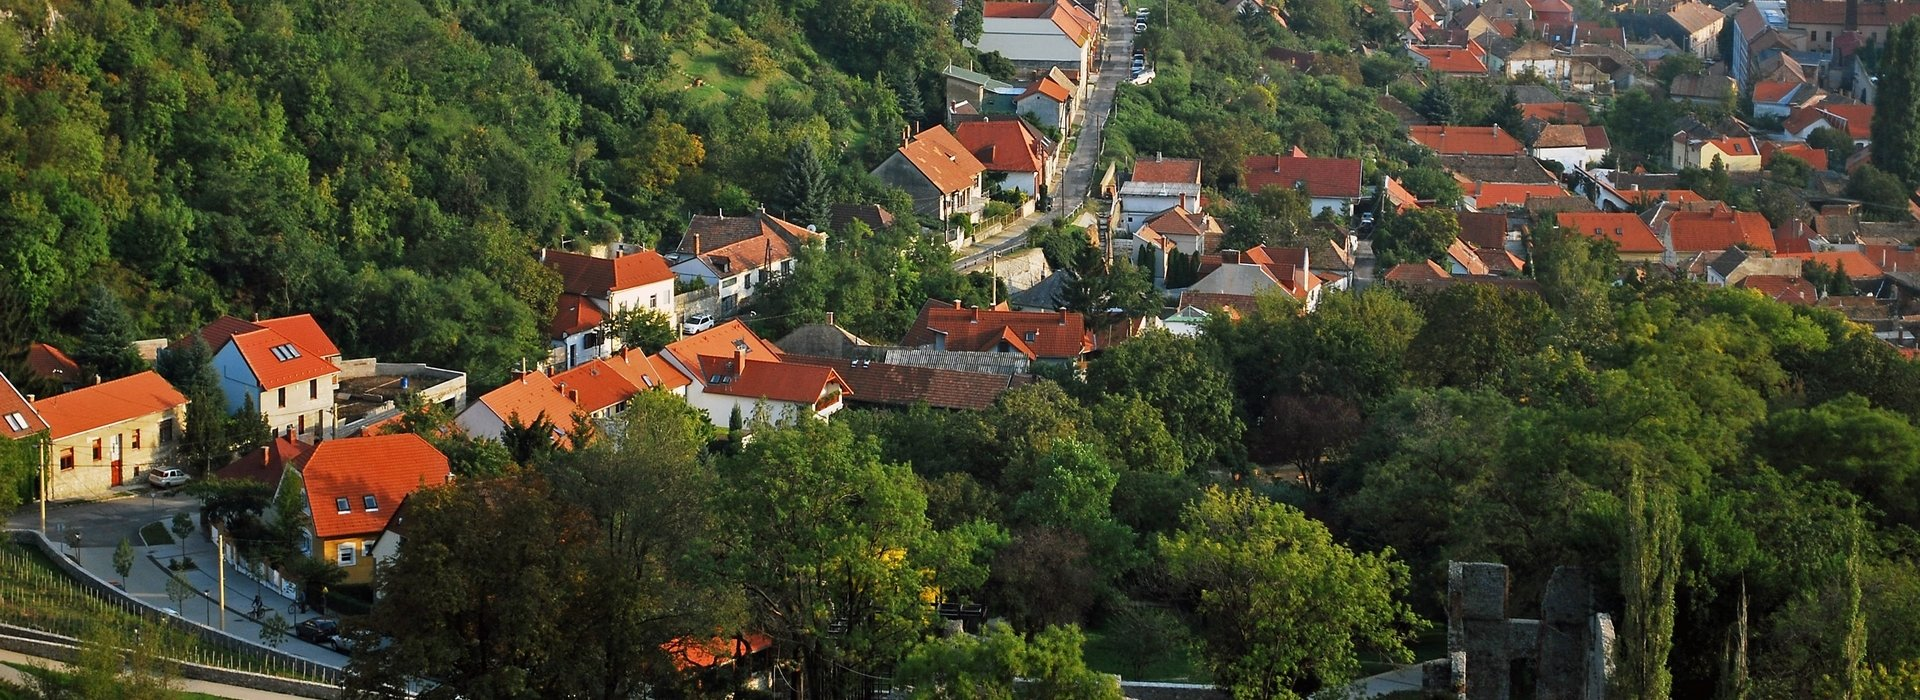 Pécs accommodation - Hotels, pensions, apartments